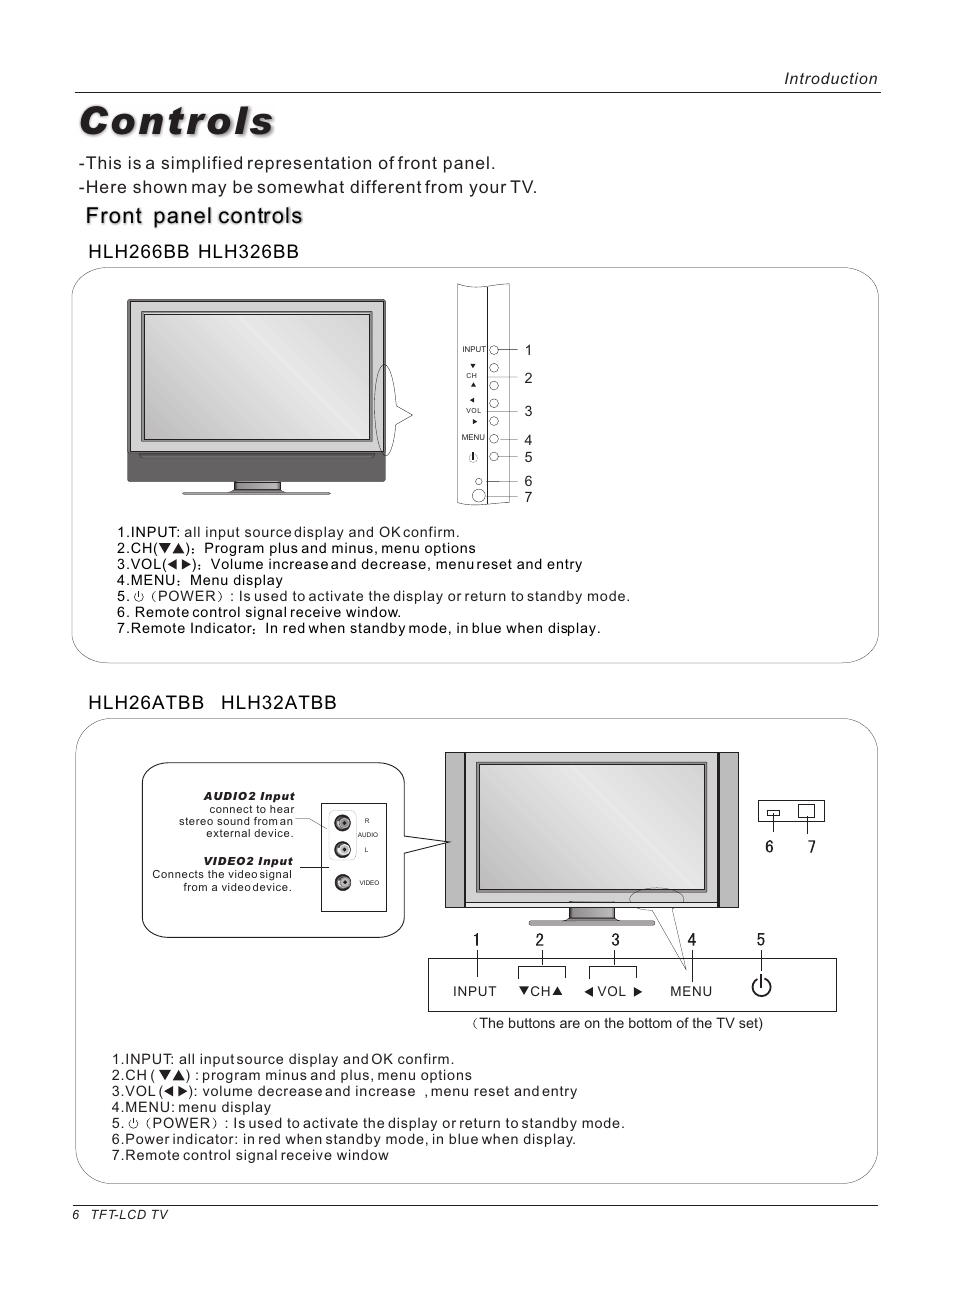 Controls Front Panel Controls Haier Hlh32atbb User Manual Page 6 48